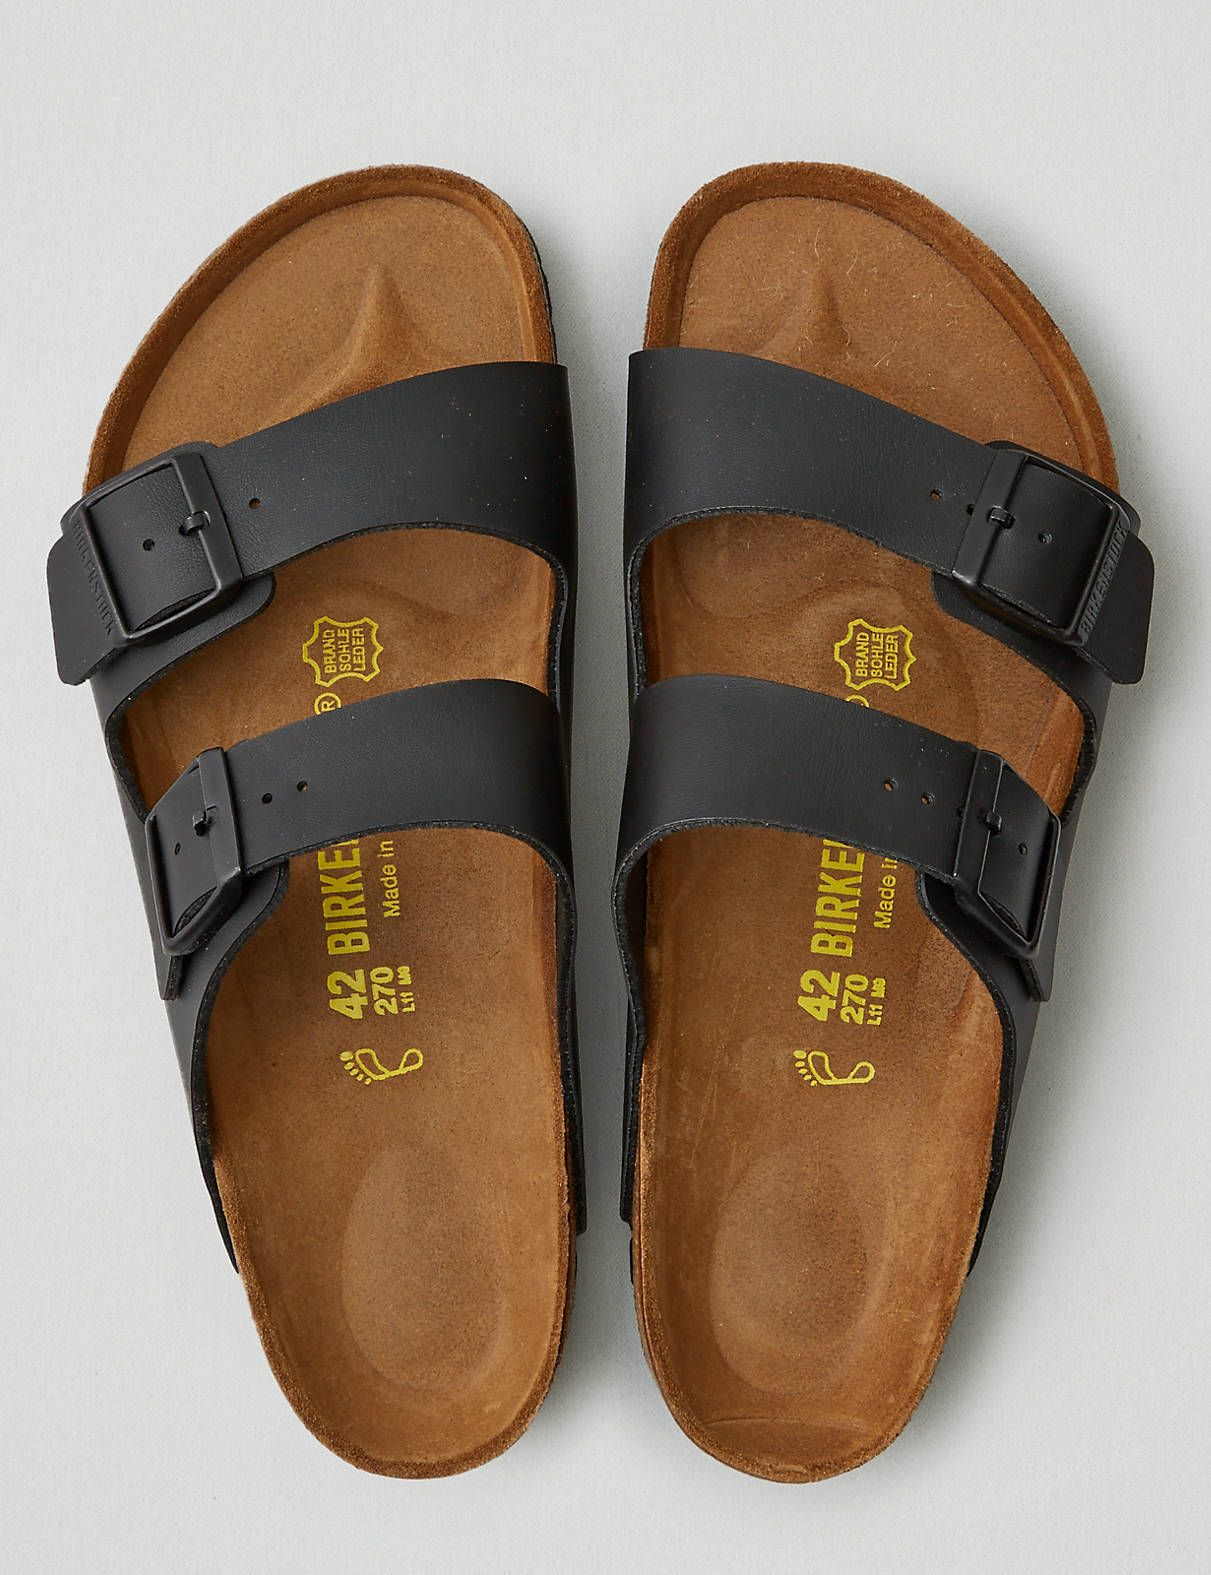 8f37328bd3f6 A buckle or two. That s the original Birkenstock. Made in Germany since  1774.